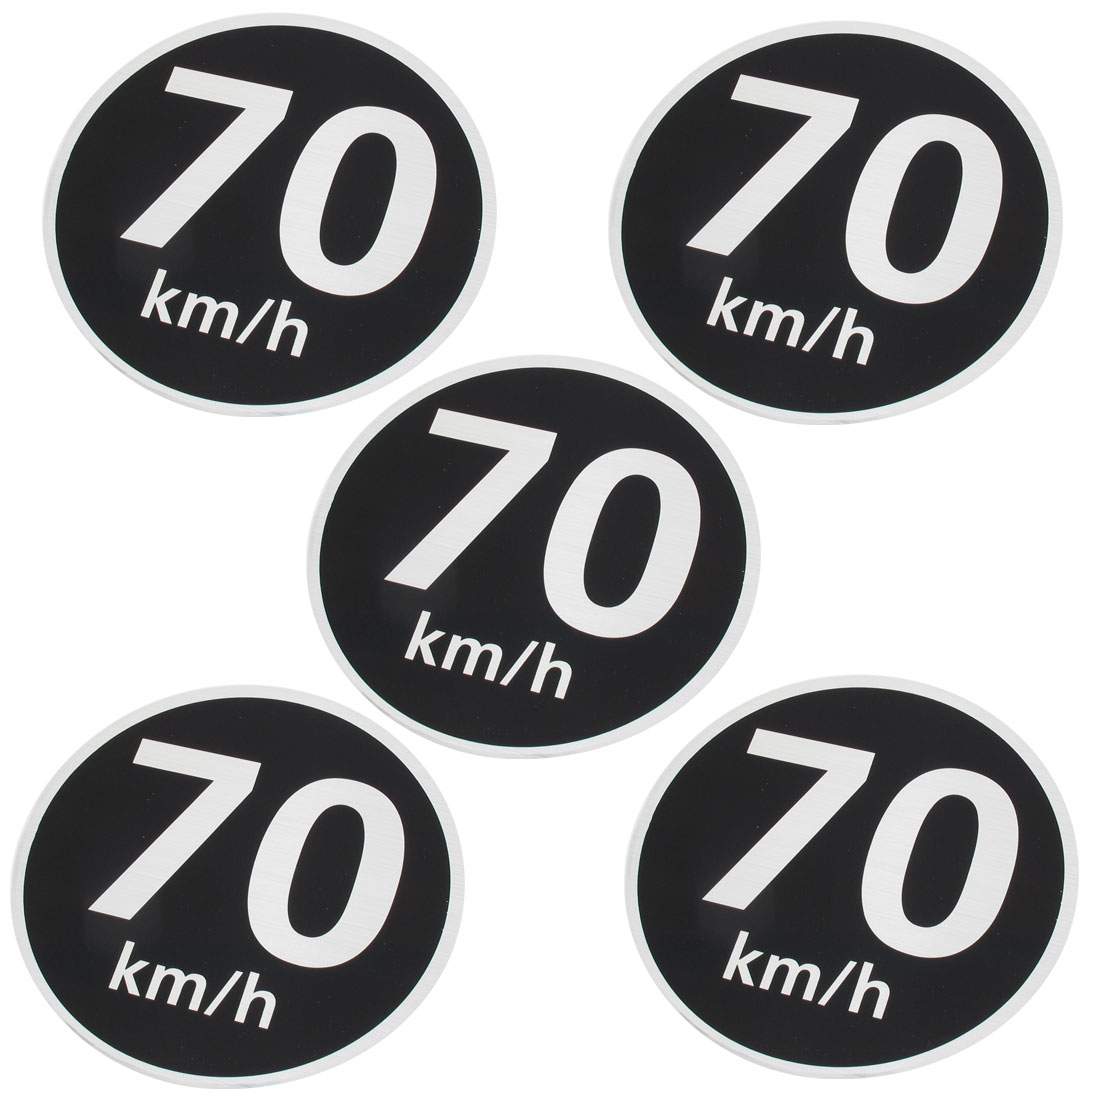 5 Pcs Vehicle 70km Pattern Round Shaped Reflective Light Sticker Decal Black